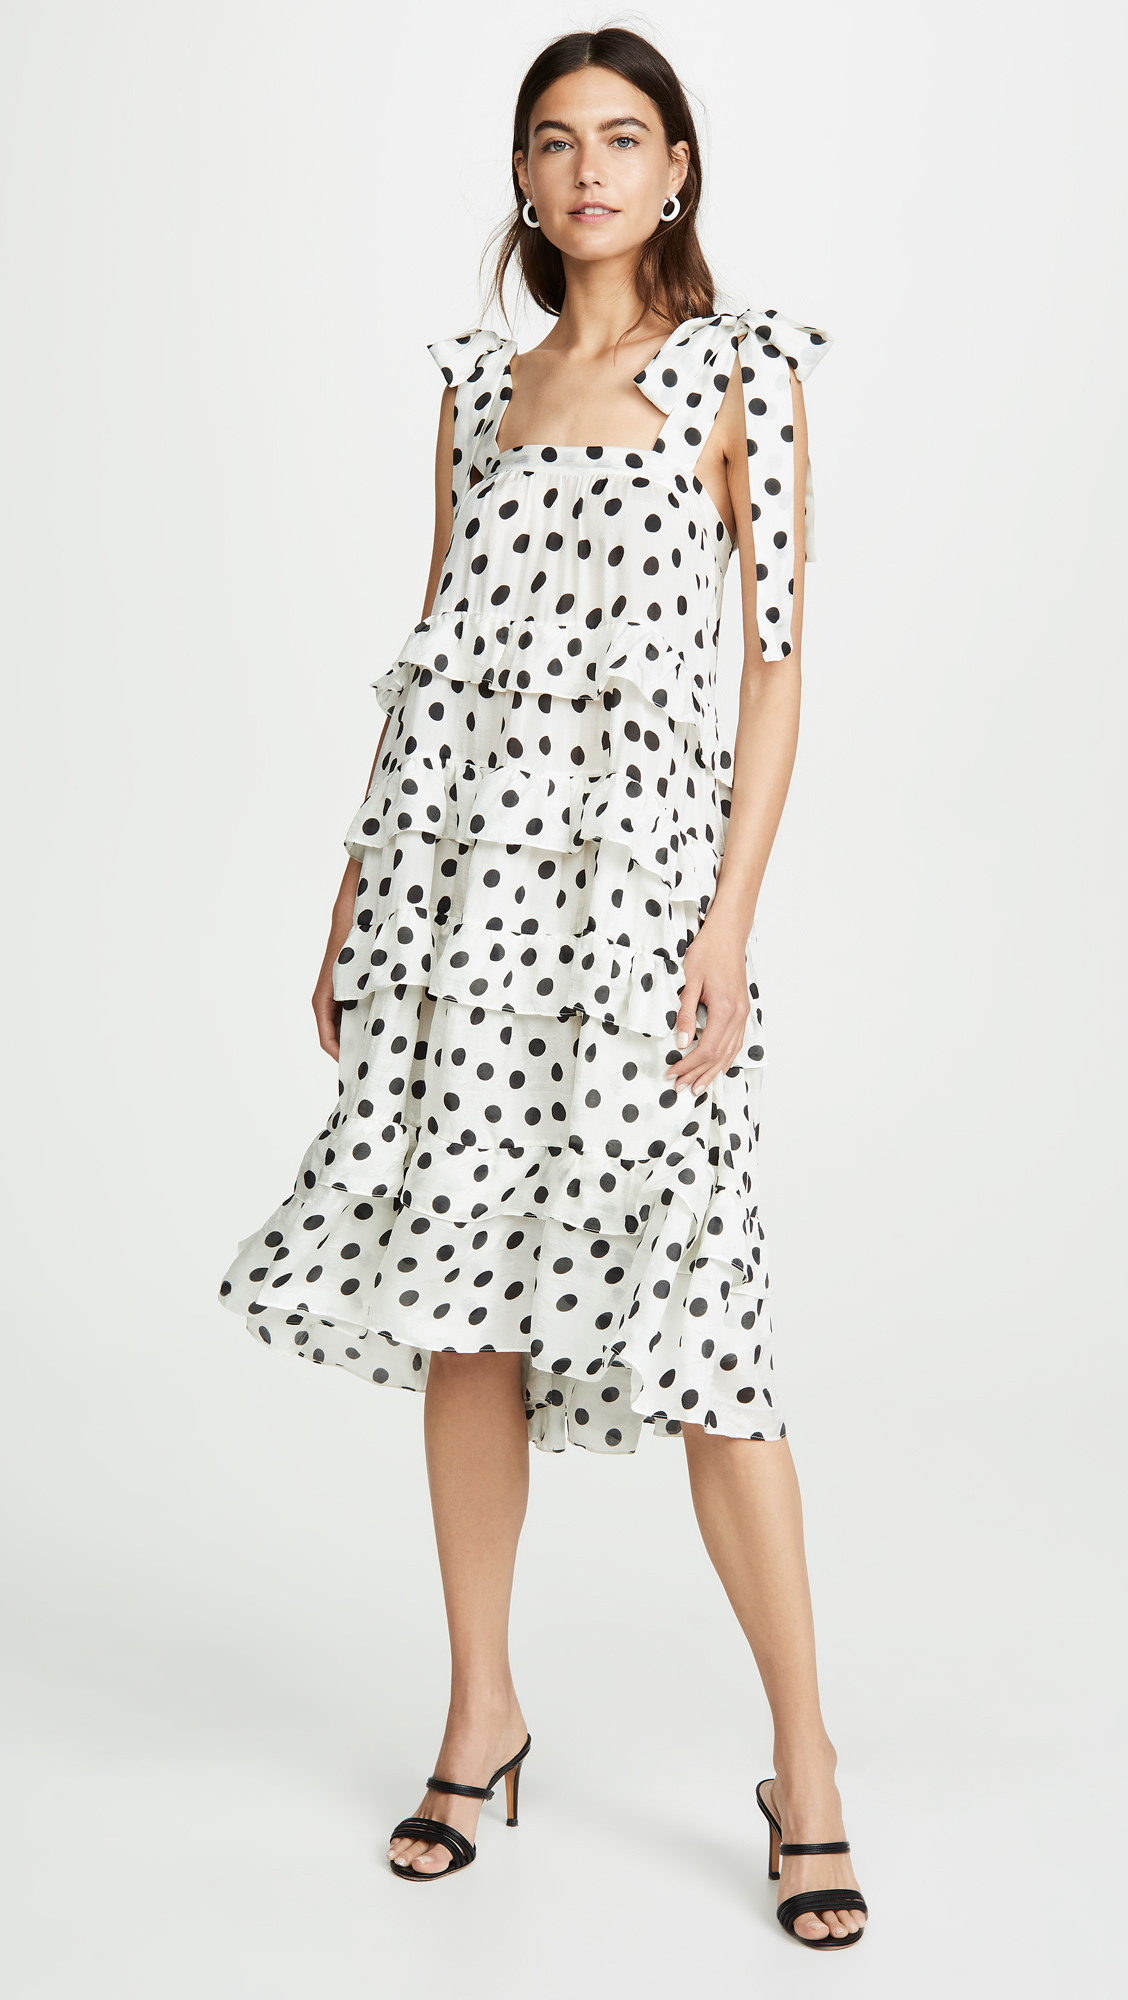 Polka Dot Ruffled Dress with Bows Black and White Tiered Satin